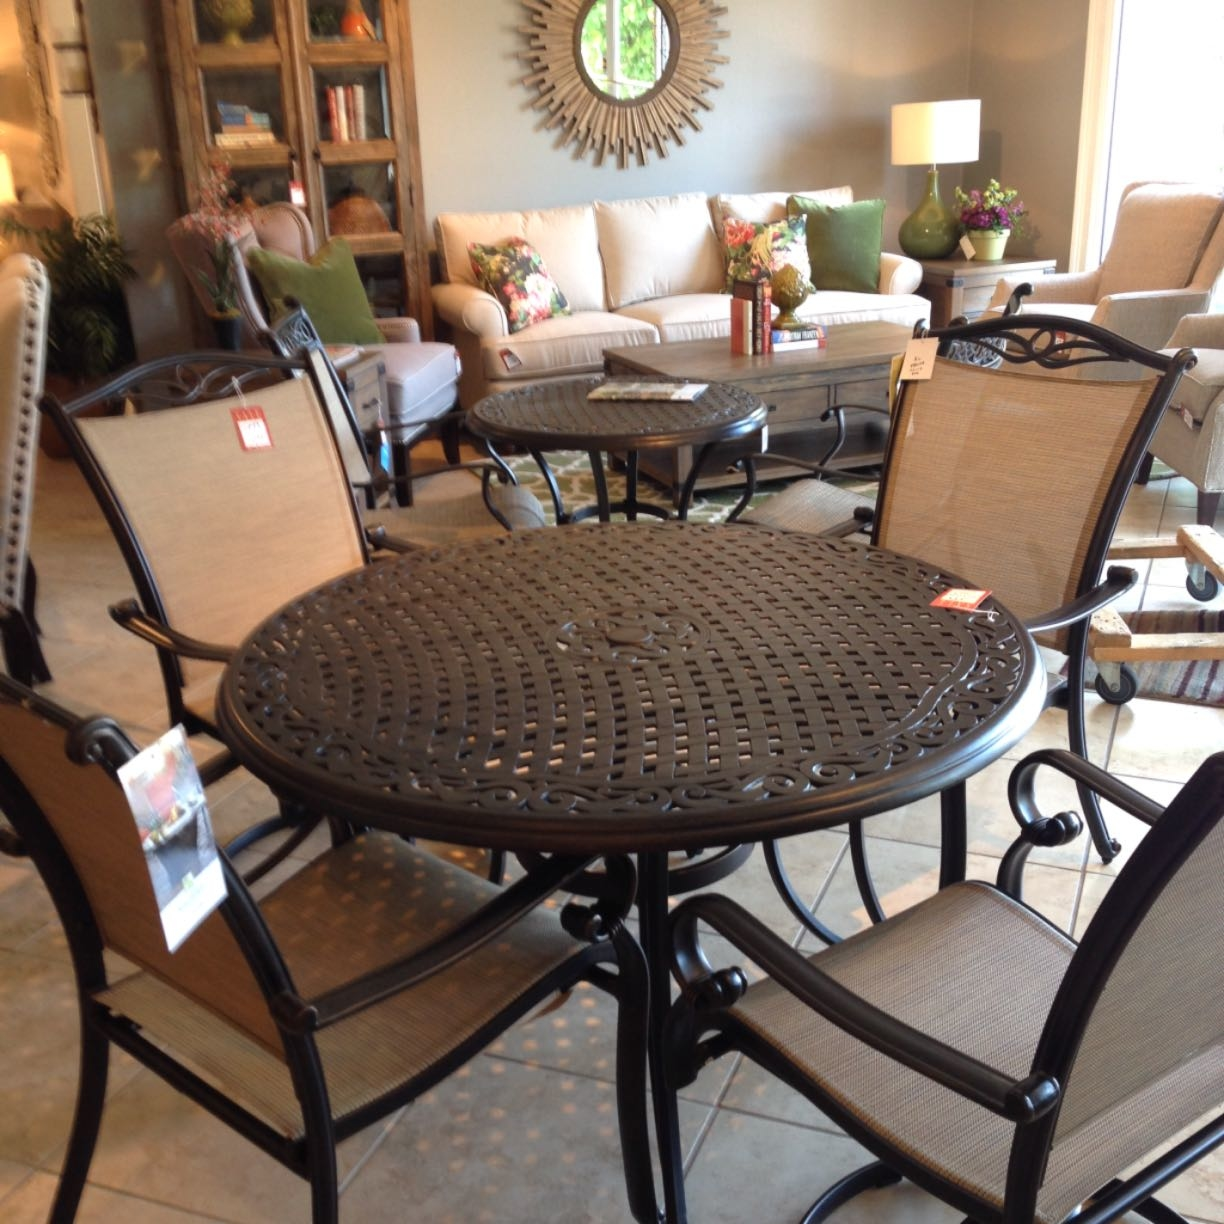 Signature Furniture In Lexington Ky Whitepages